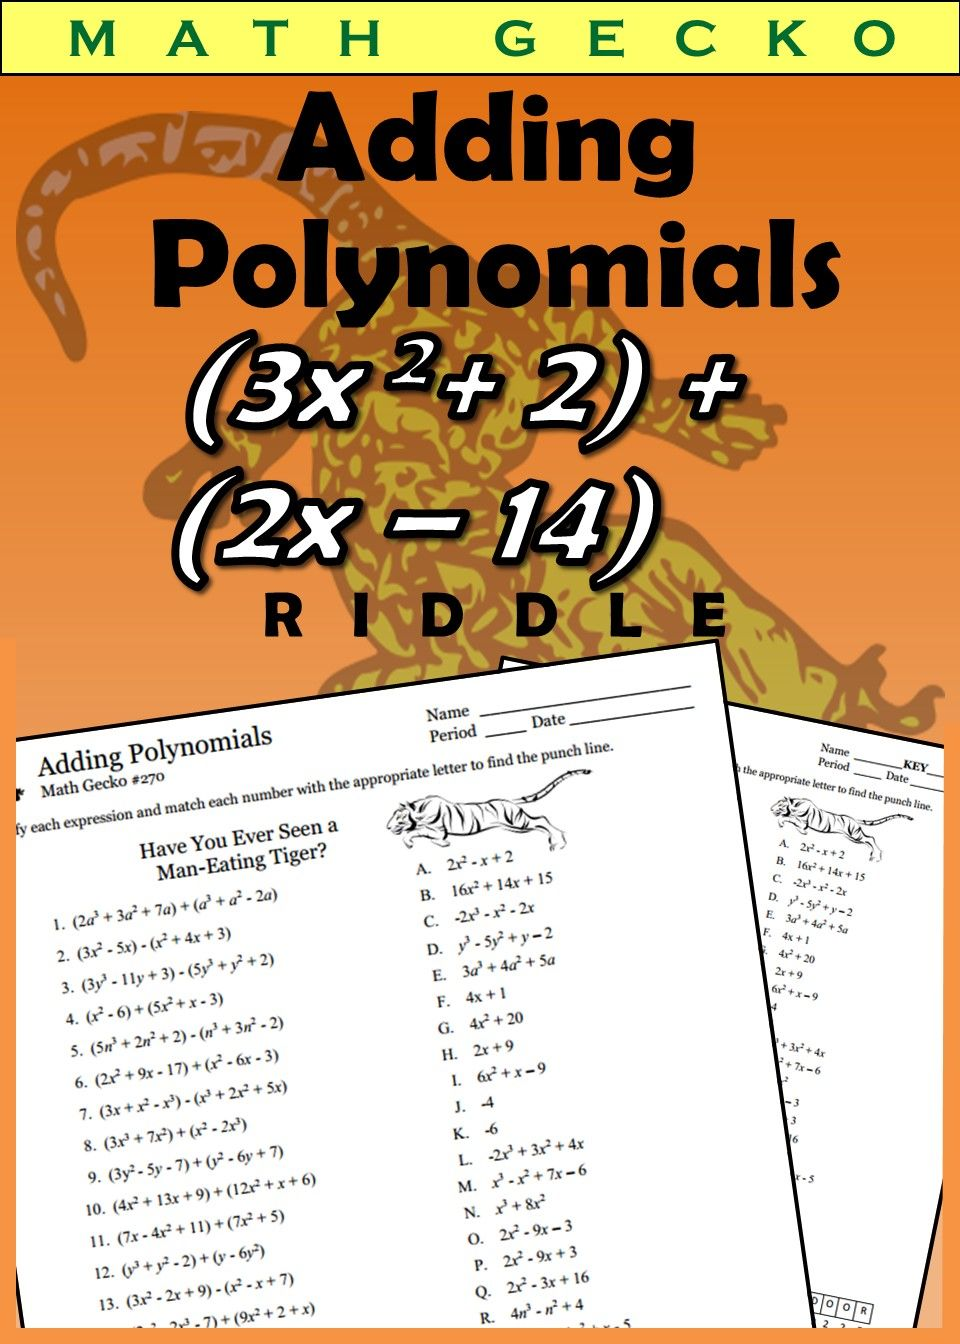 270 Adding and Subtracting Polynomials (I) Riddle